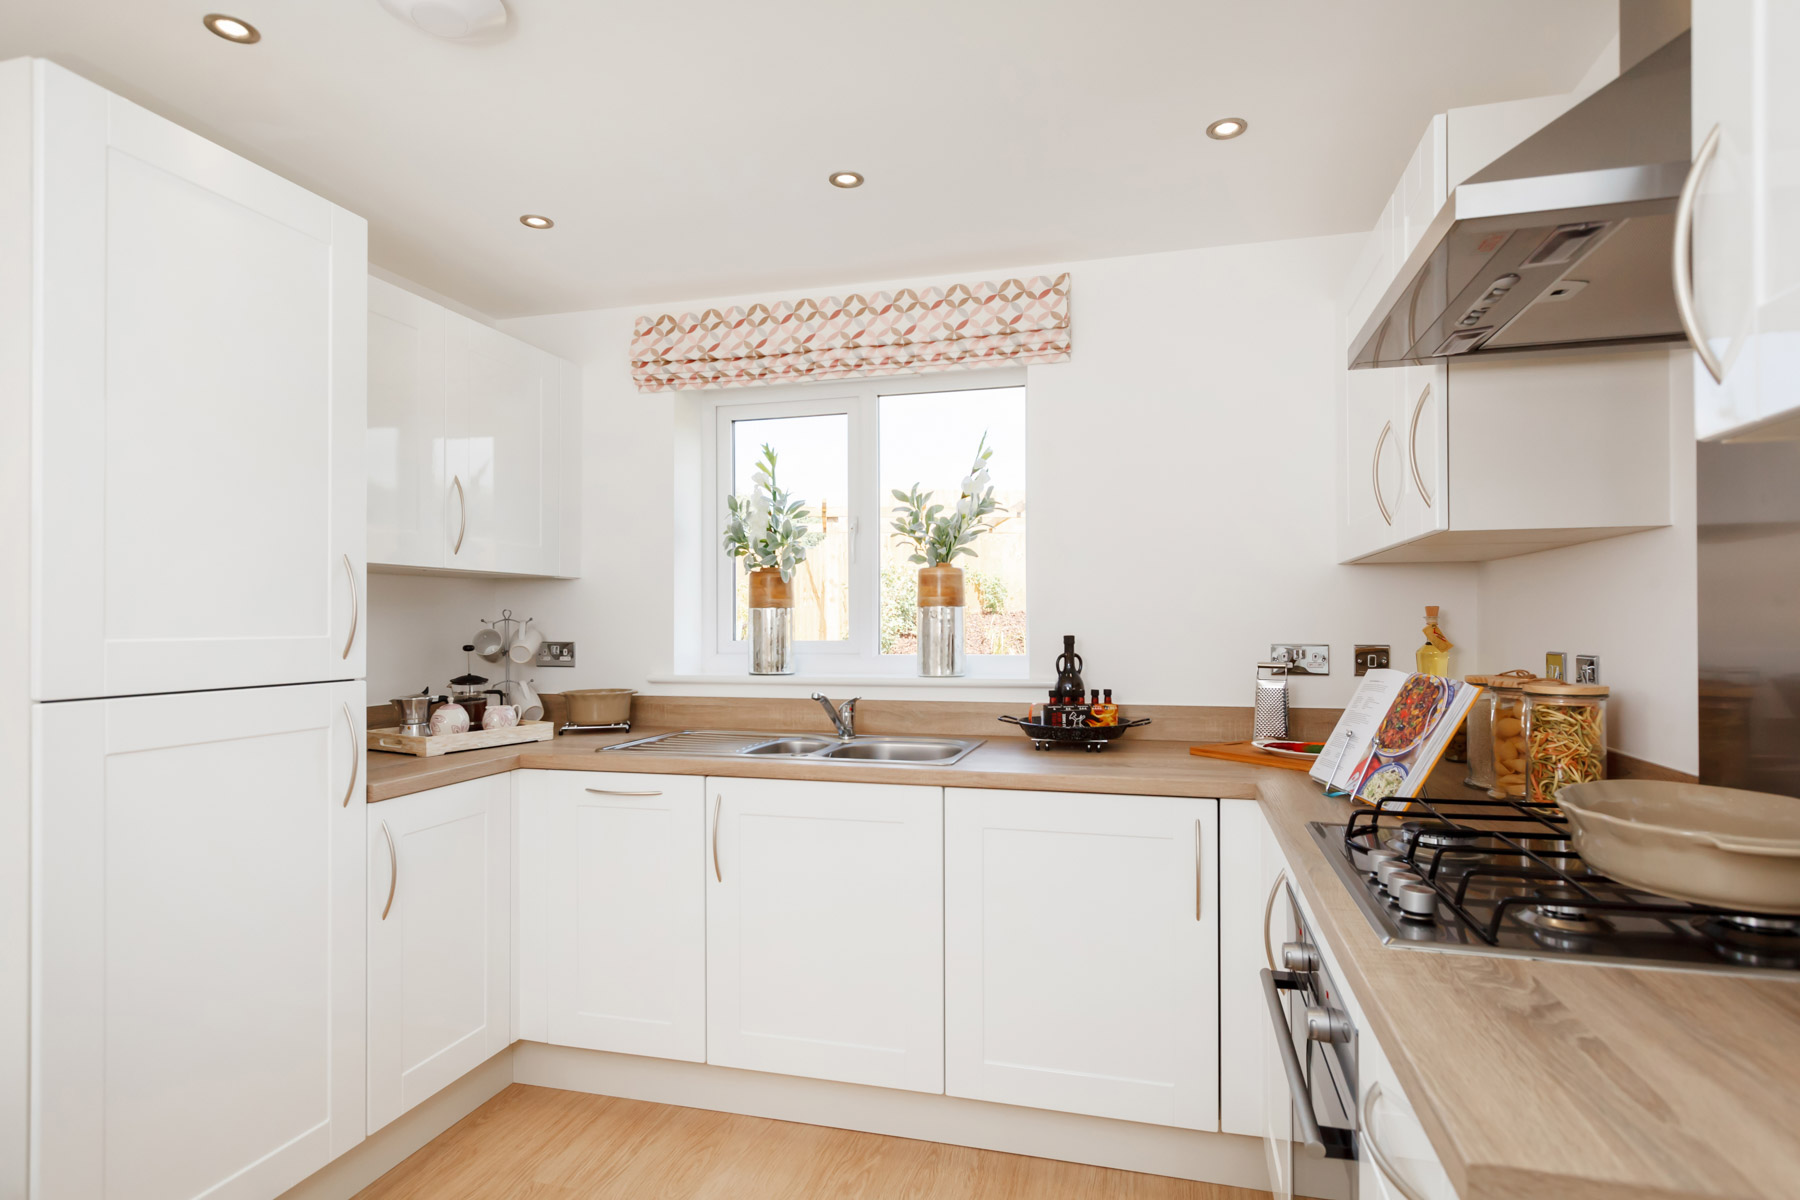 Aldenham kitchen